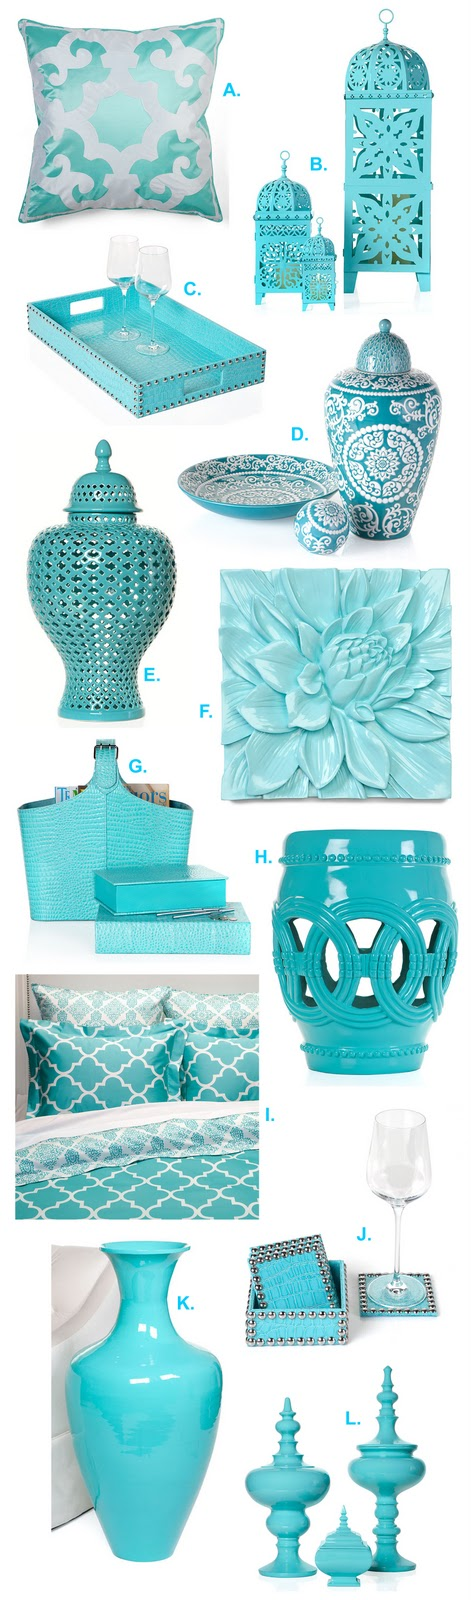 A designer a contractor a for aquamarine for Aqua blue bathroom accessories